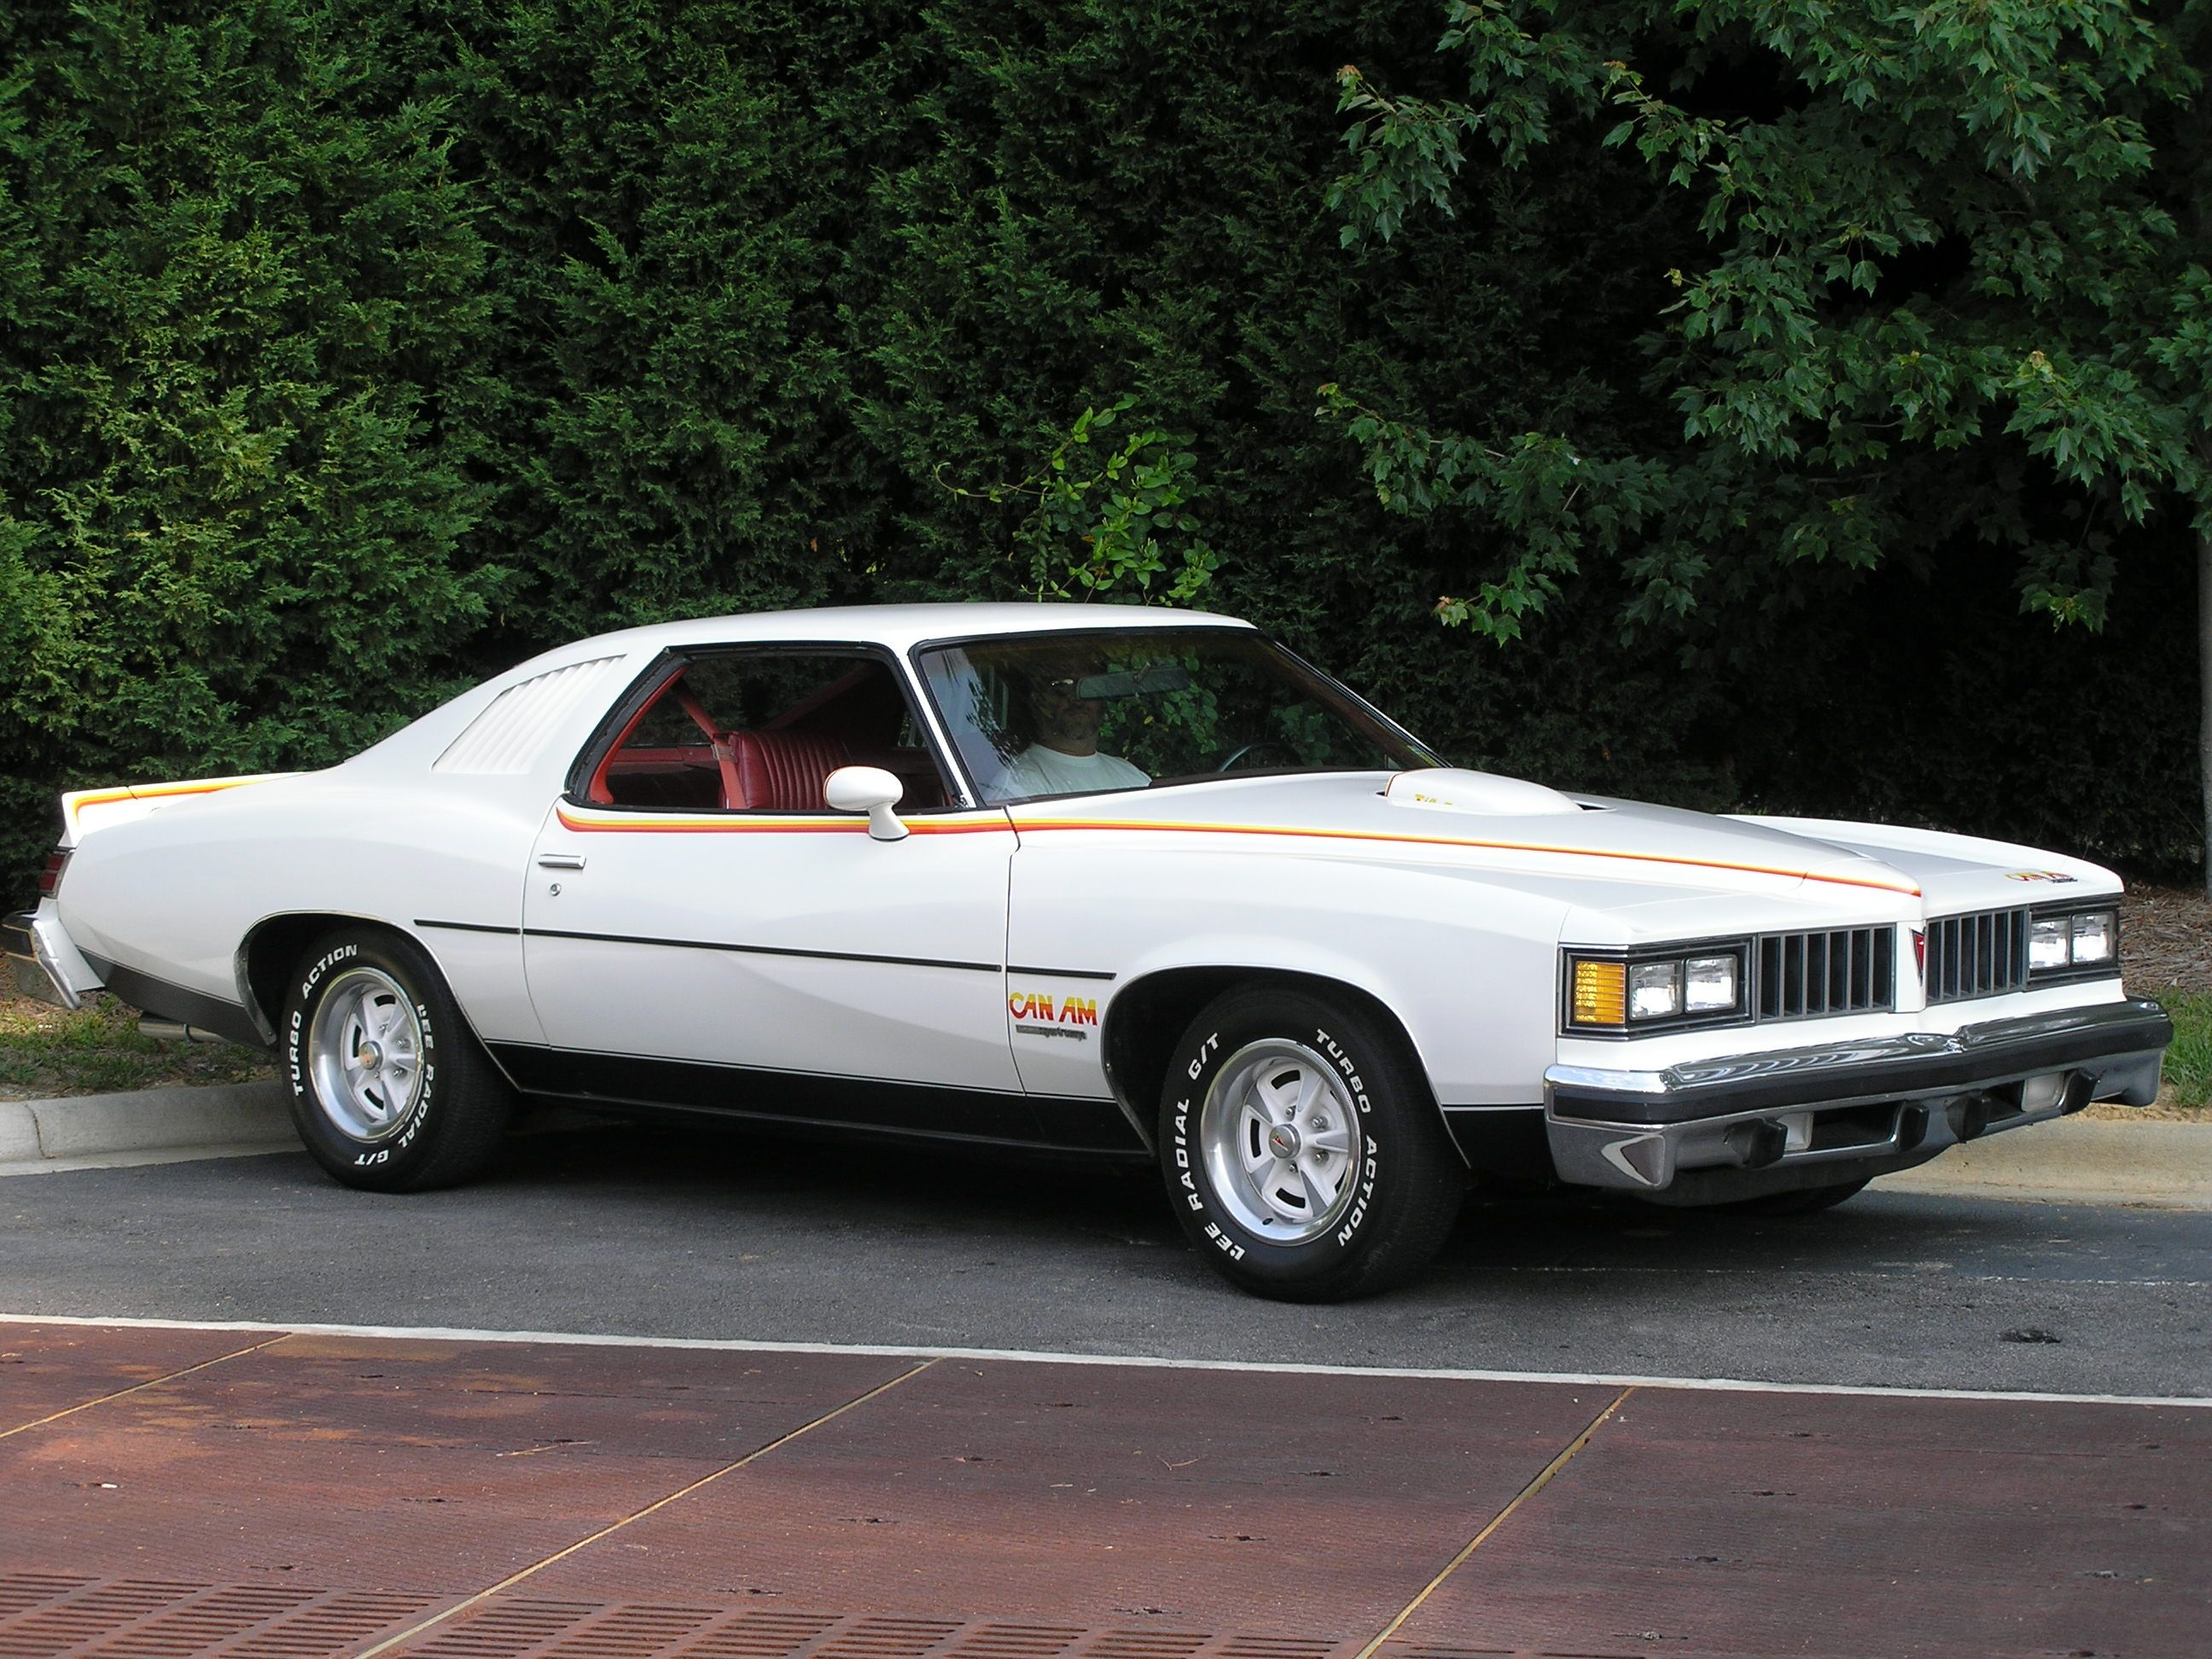 1977 Pontiac Can Am Cars Bop Gm Pinterest Cars American